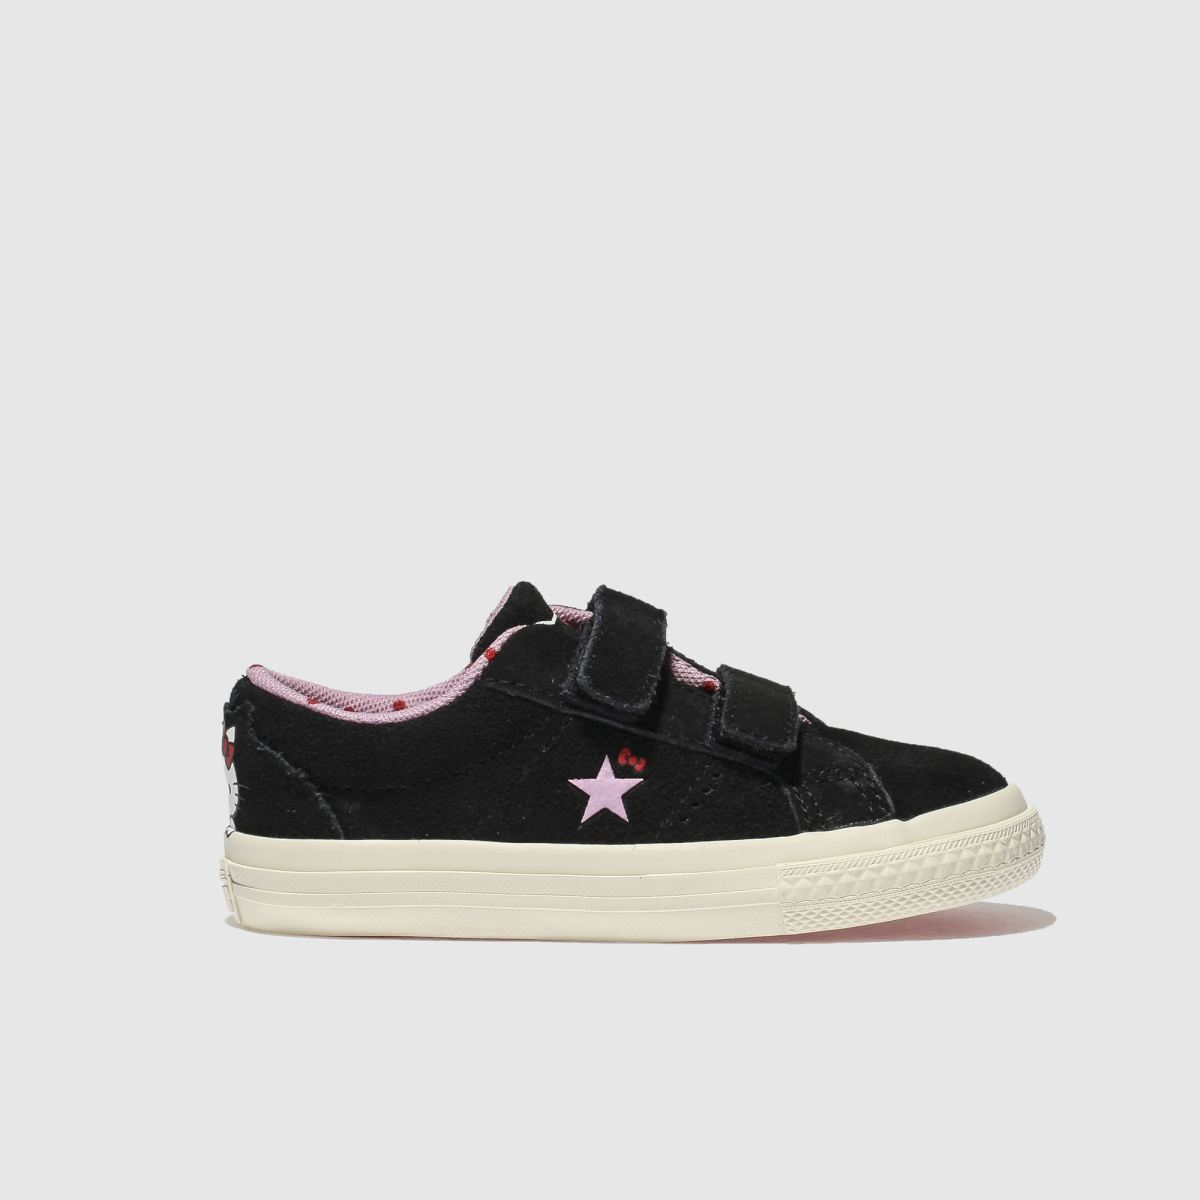 Converse Black One Star Hello Kitty Girls Toddler Toddler